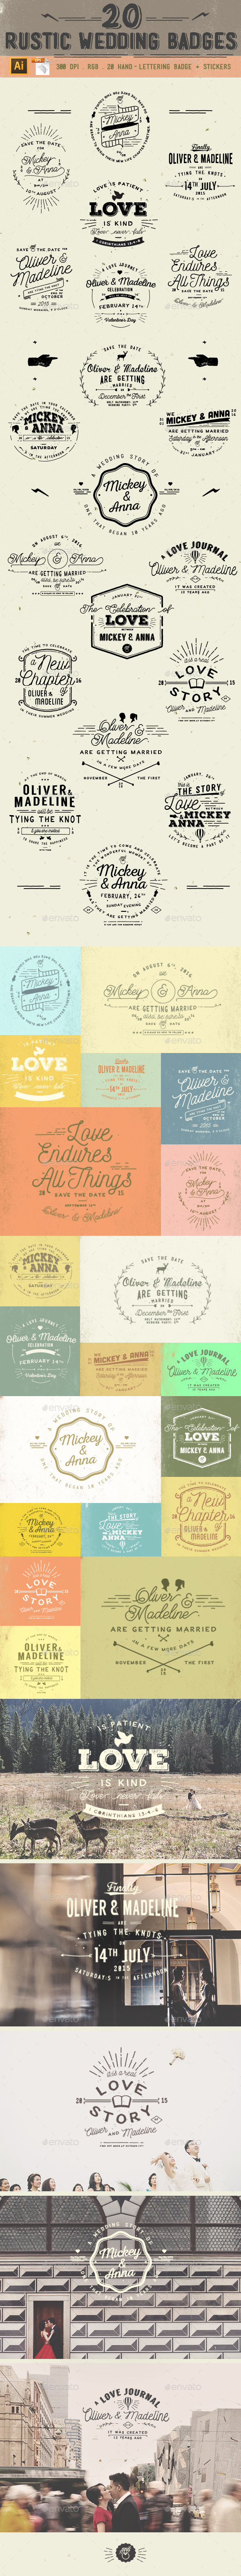 20 Rustic Wedding Badge - Badges & Stickers Web Elements